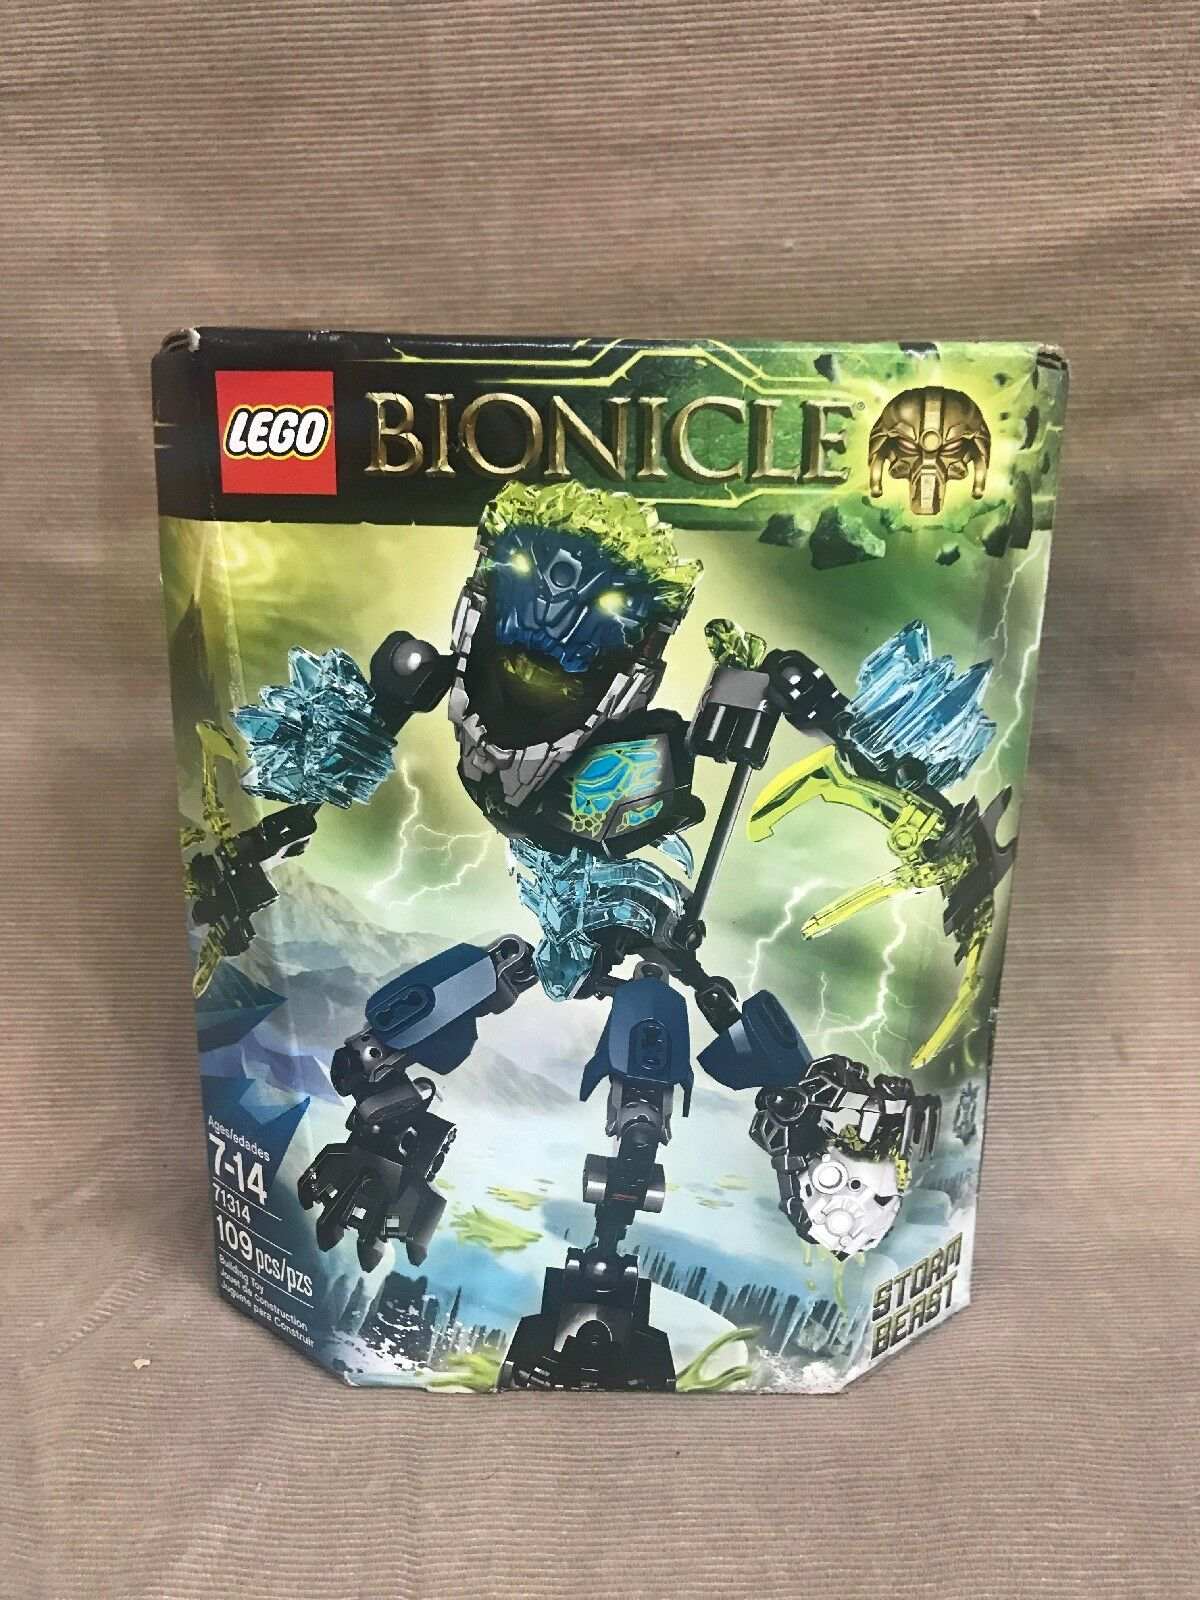 NEW LEGO Bionicle Storm Beast 71314 - ReStiefel Ultrabuild Hunter Ice Water Mask